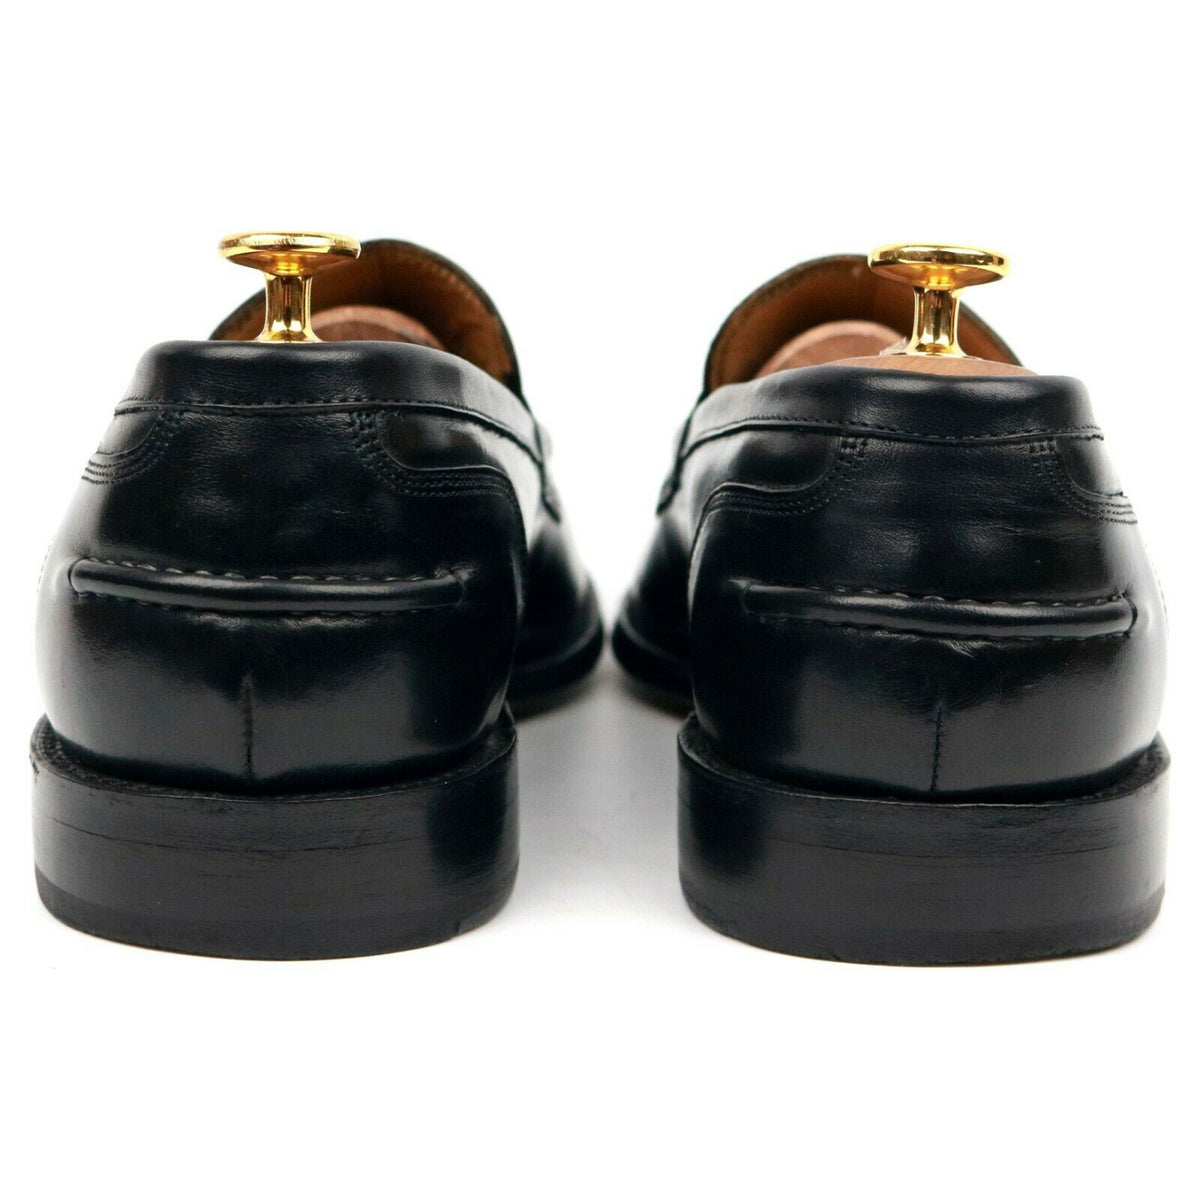 Grenson 'Maxwell' Black Leather Loafers UK 9 E